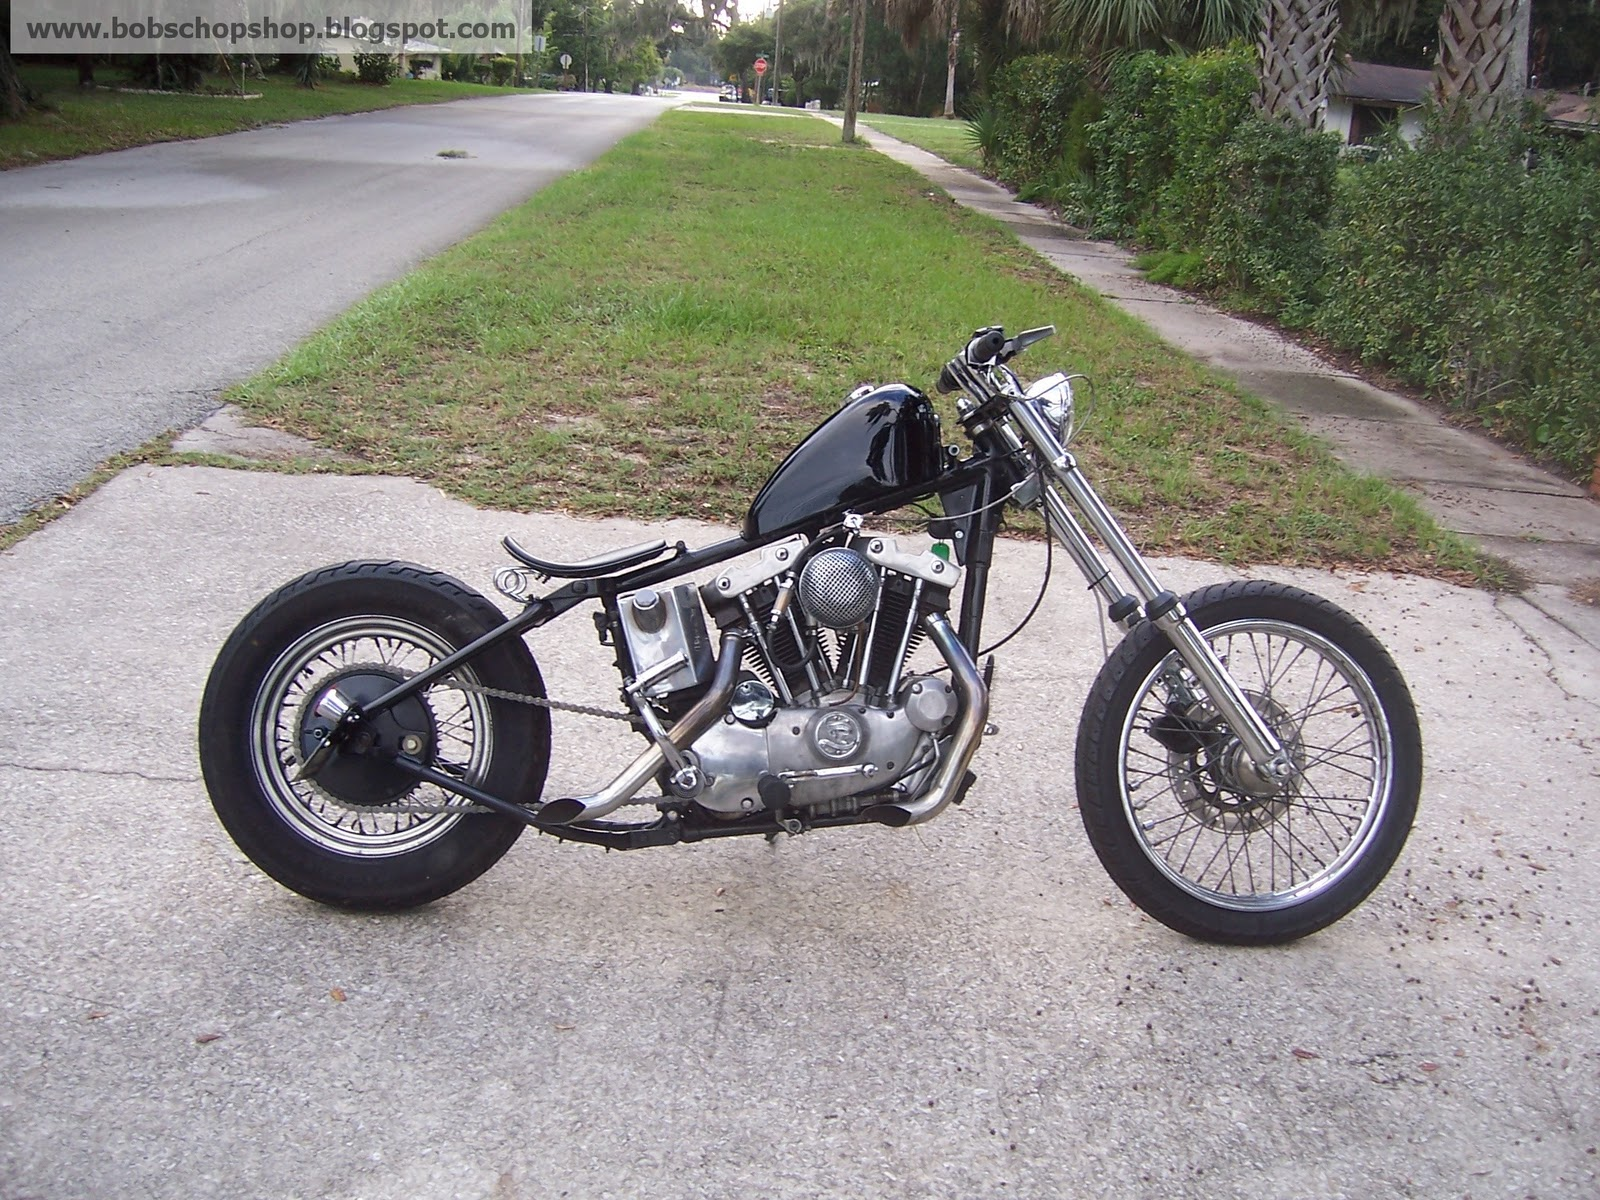 1974 Ironhead Wiring Diagram Trusted Diagrams Harley 77 Sportster Harness 1973 Chopper Davidson Oil Pump